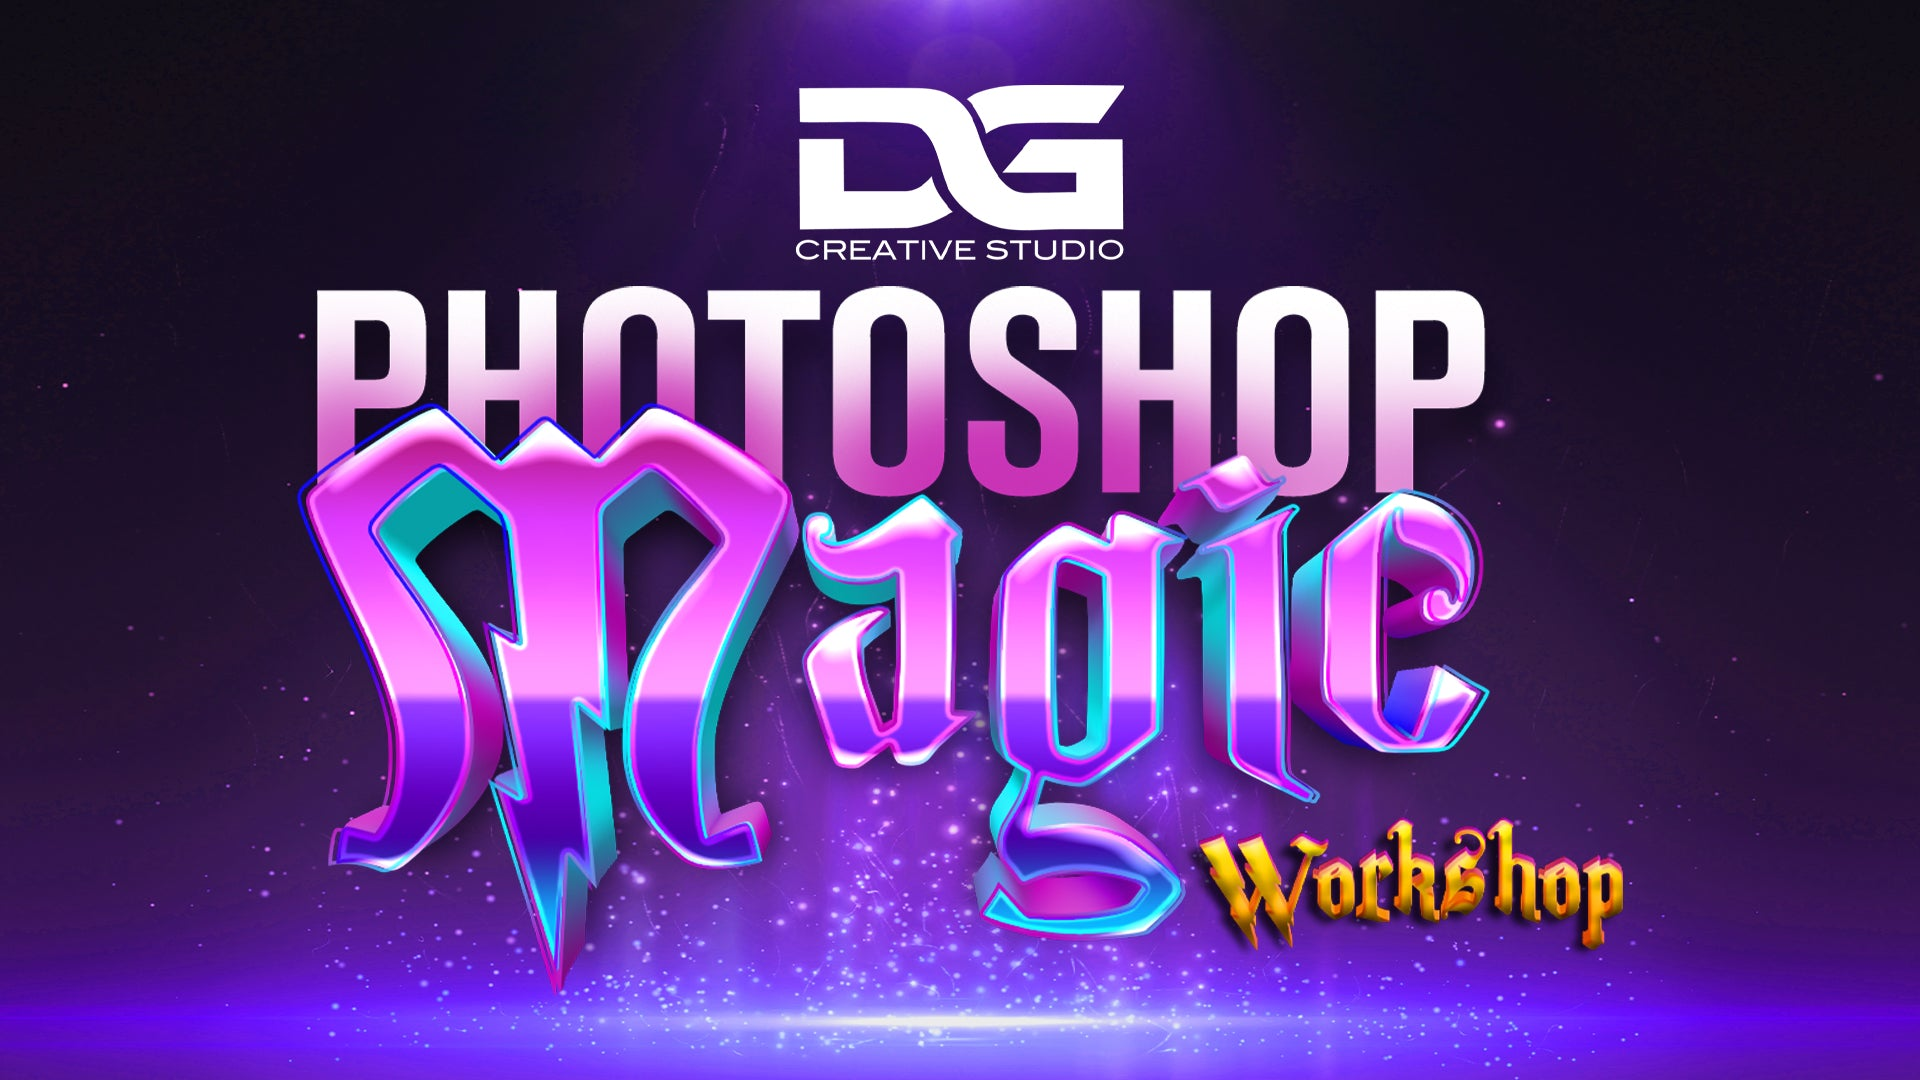 DG Creative Studio's Photoshop Magic: Design Workshops